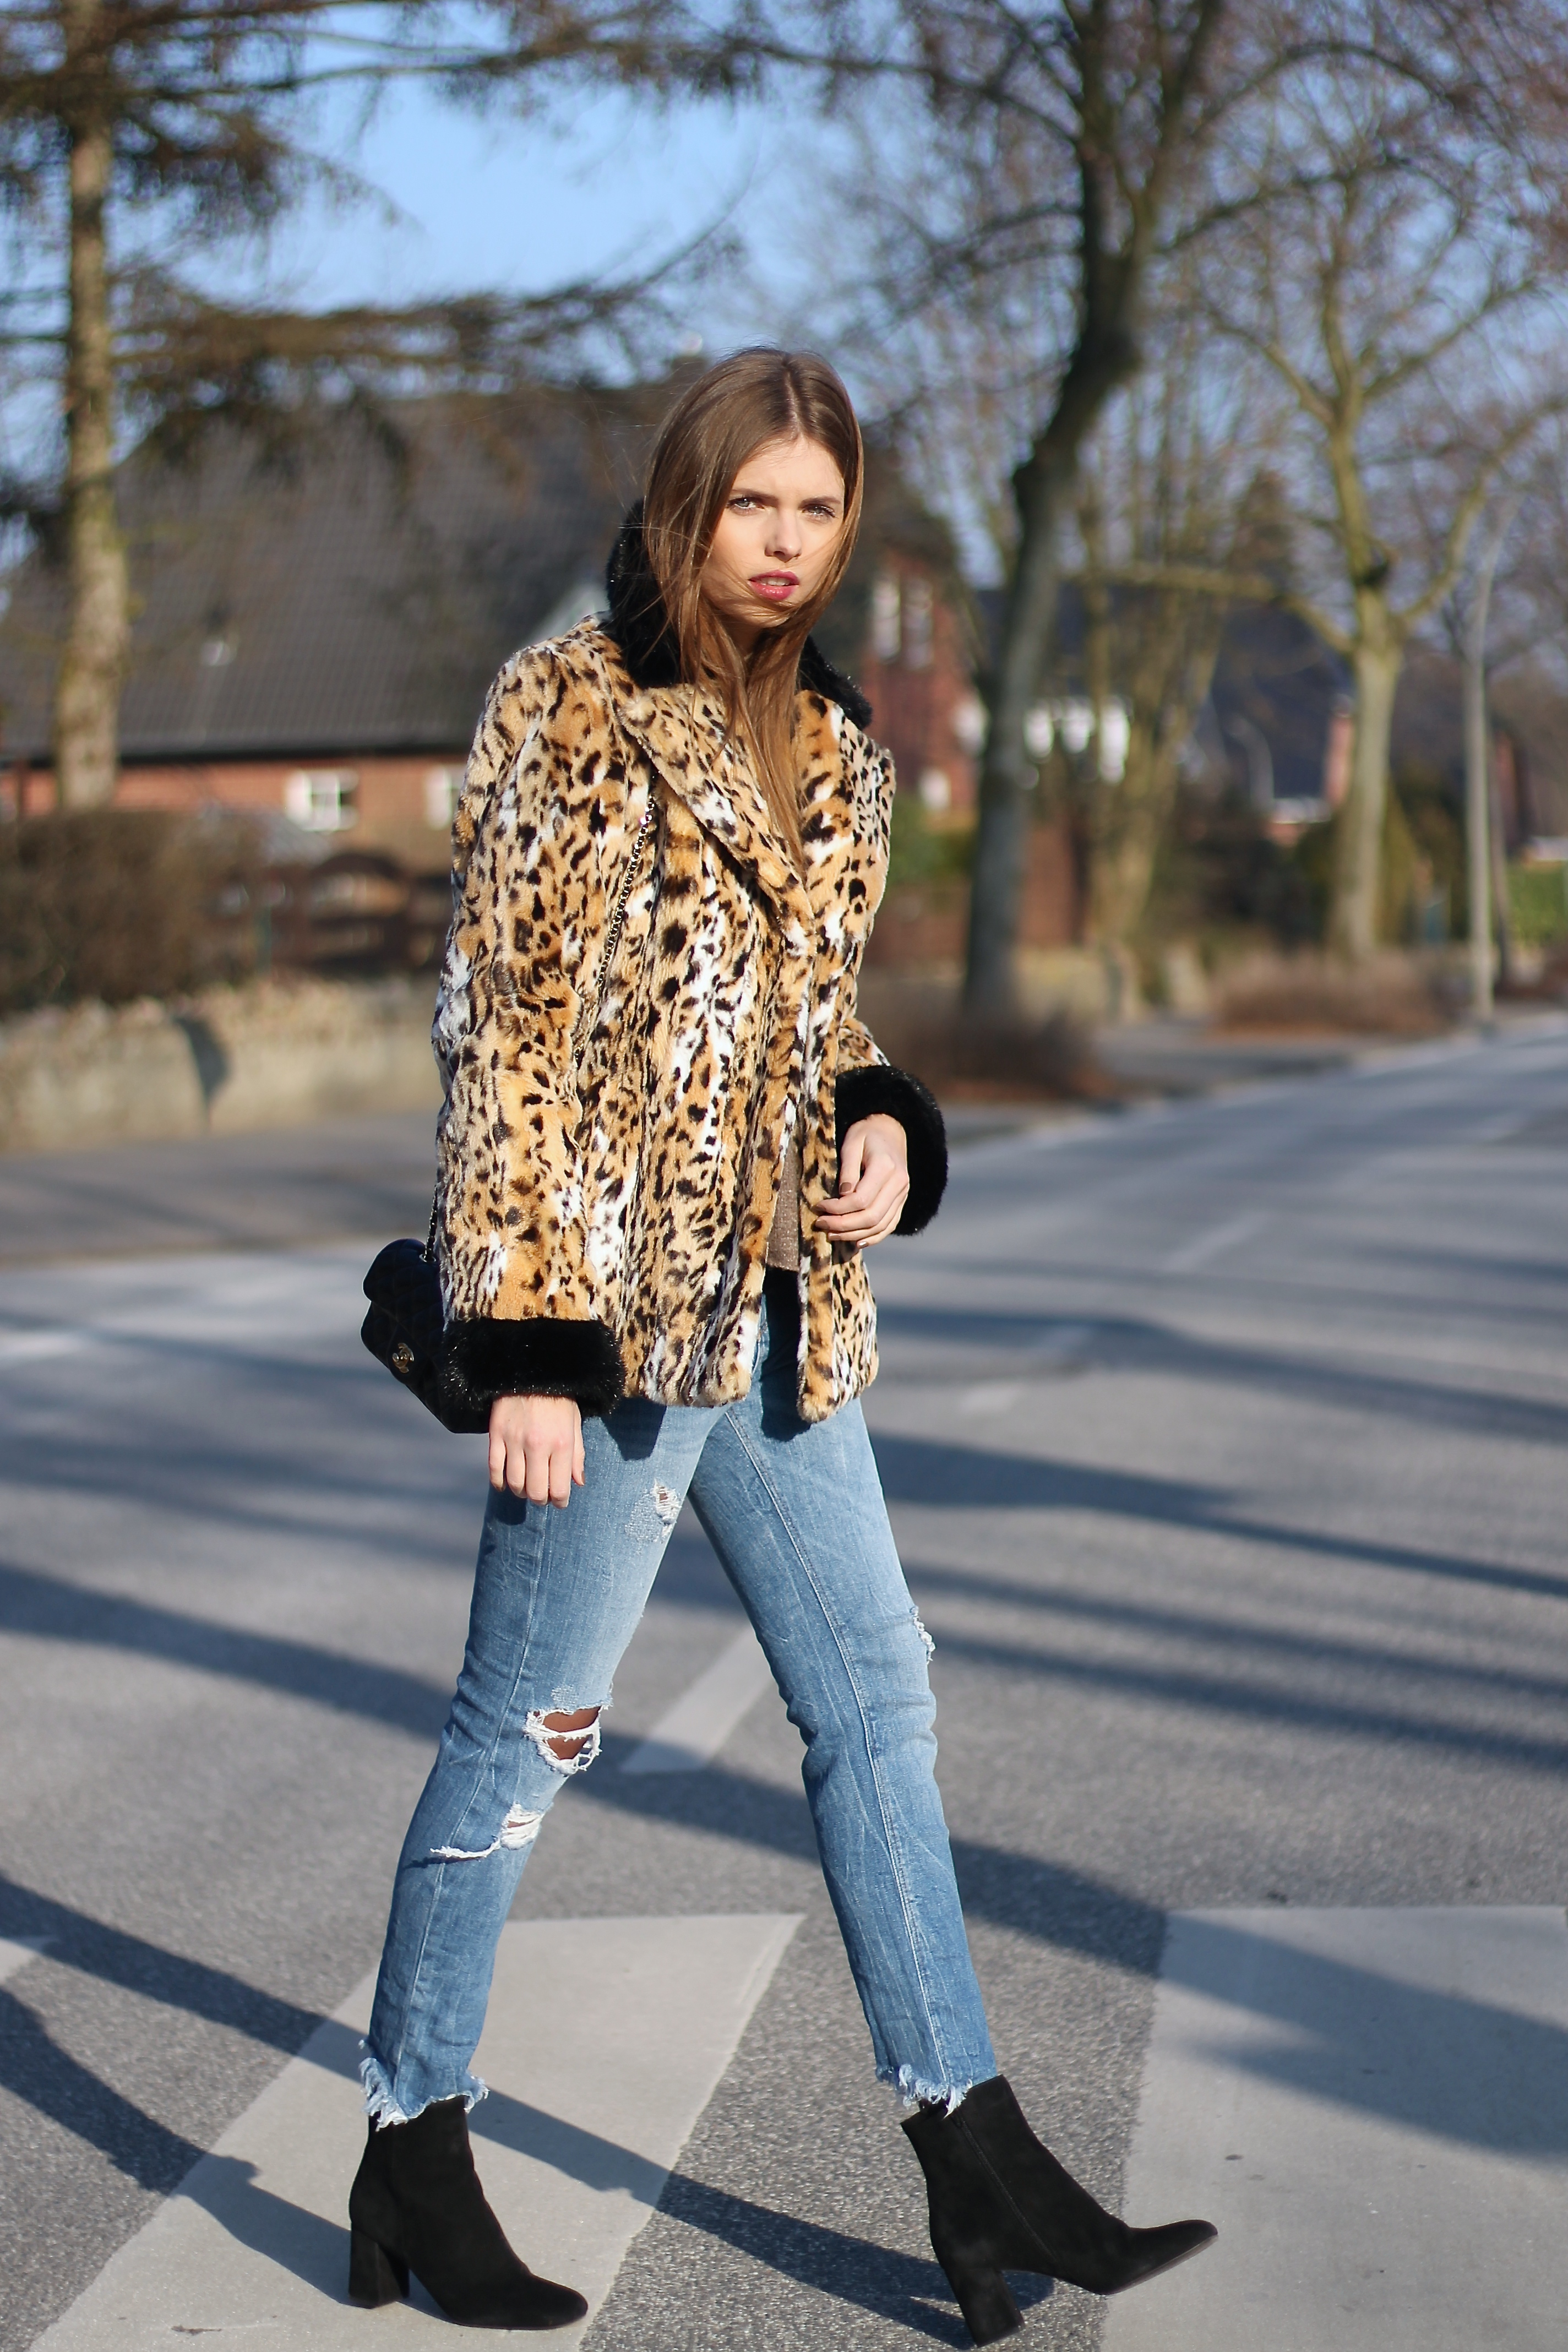 IMG 8489 - STREETSTYLE - ANIMAL PRINT COAT